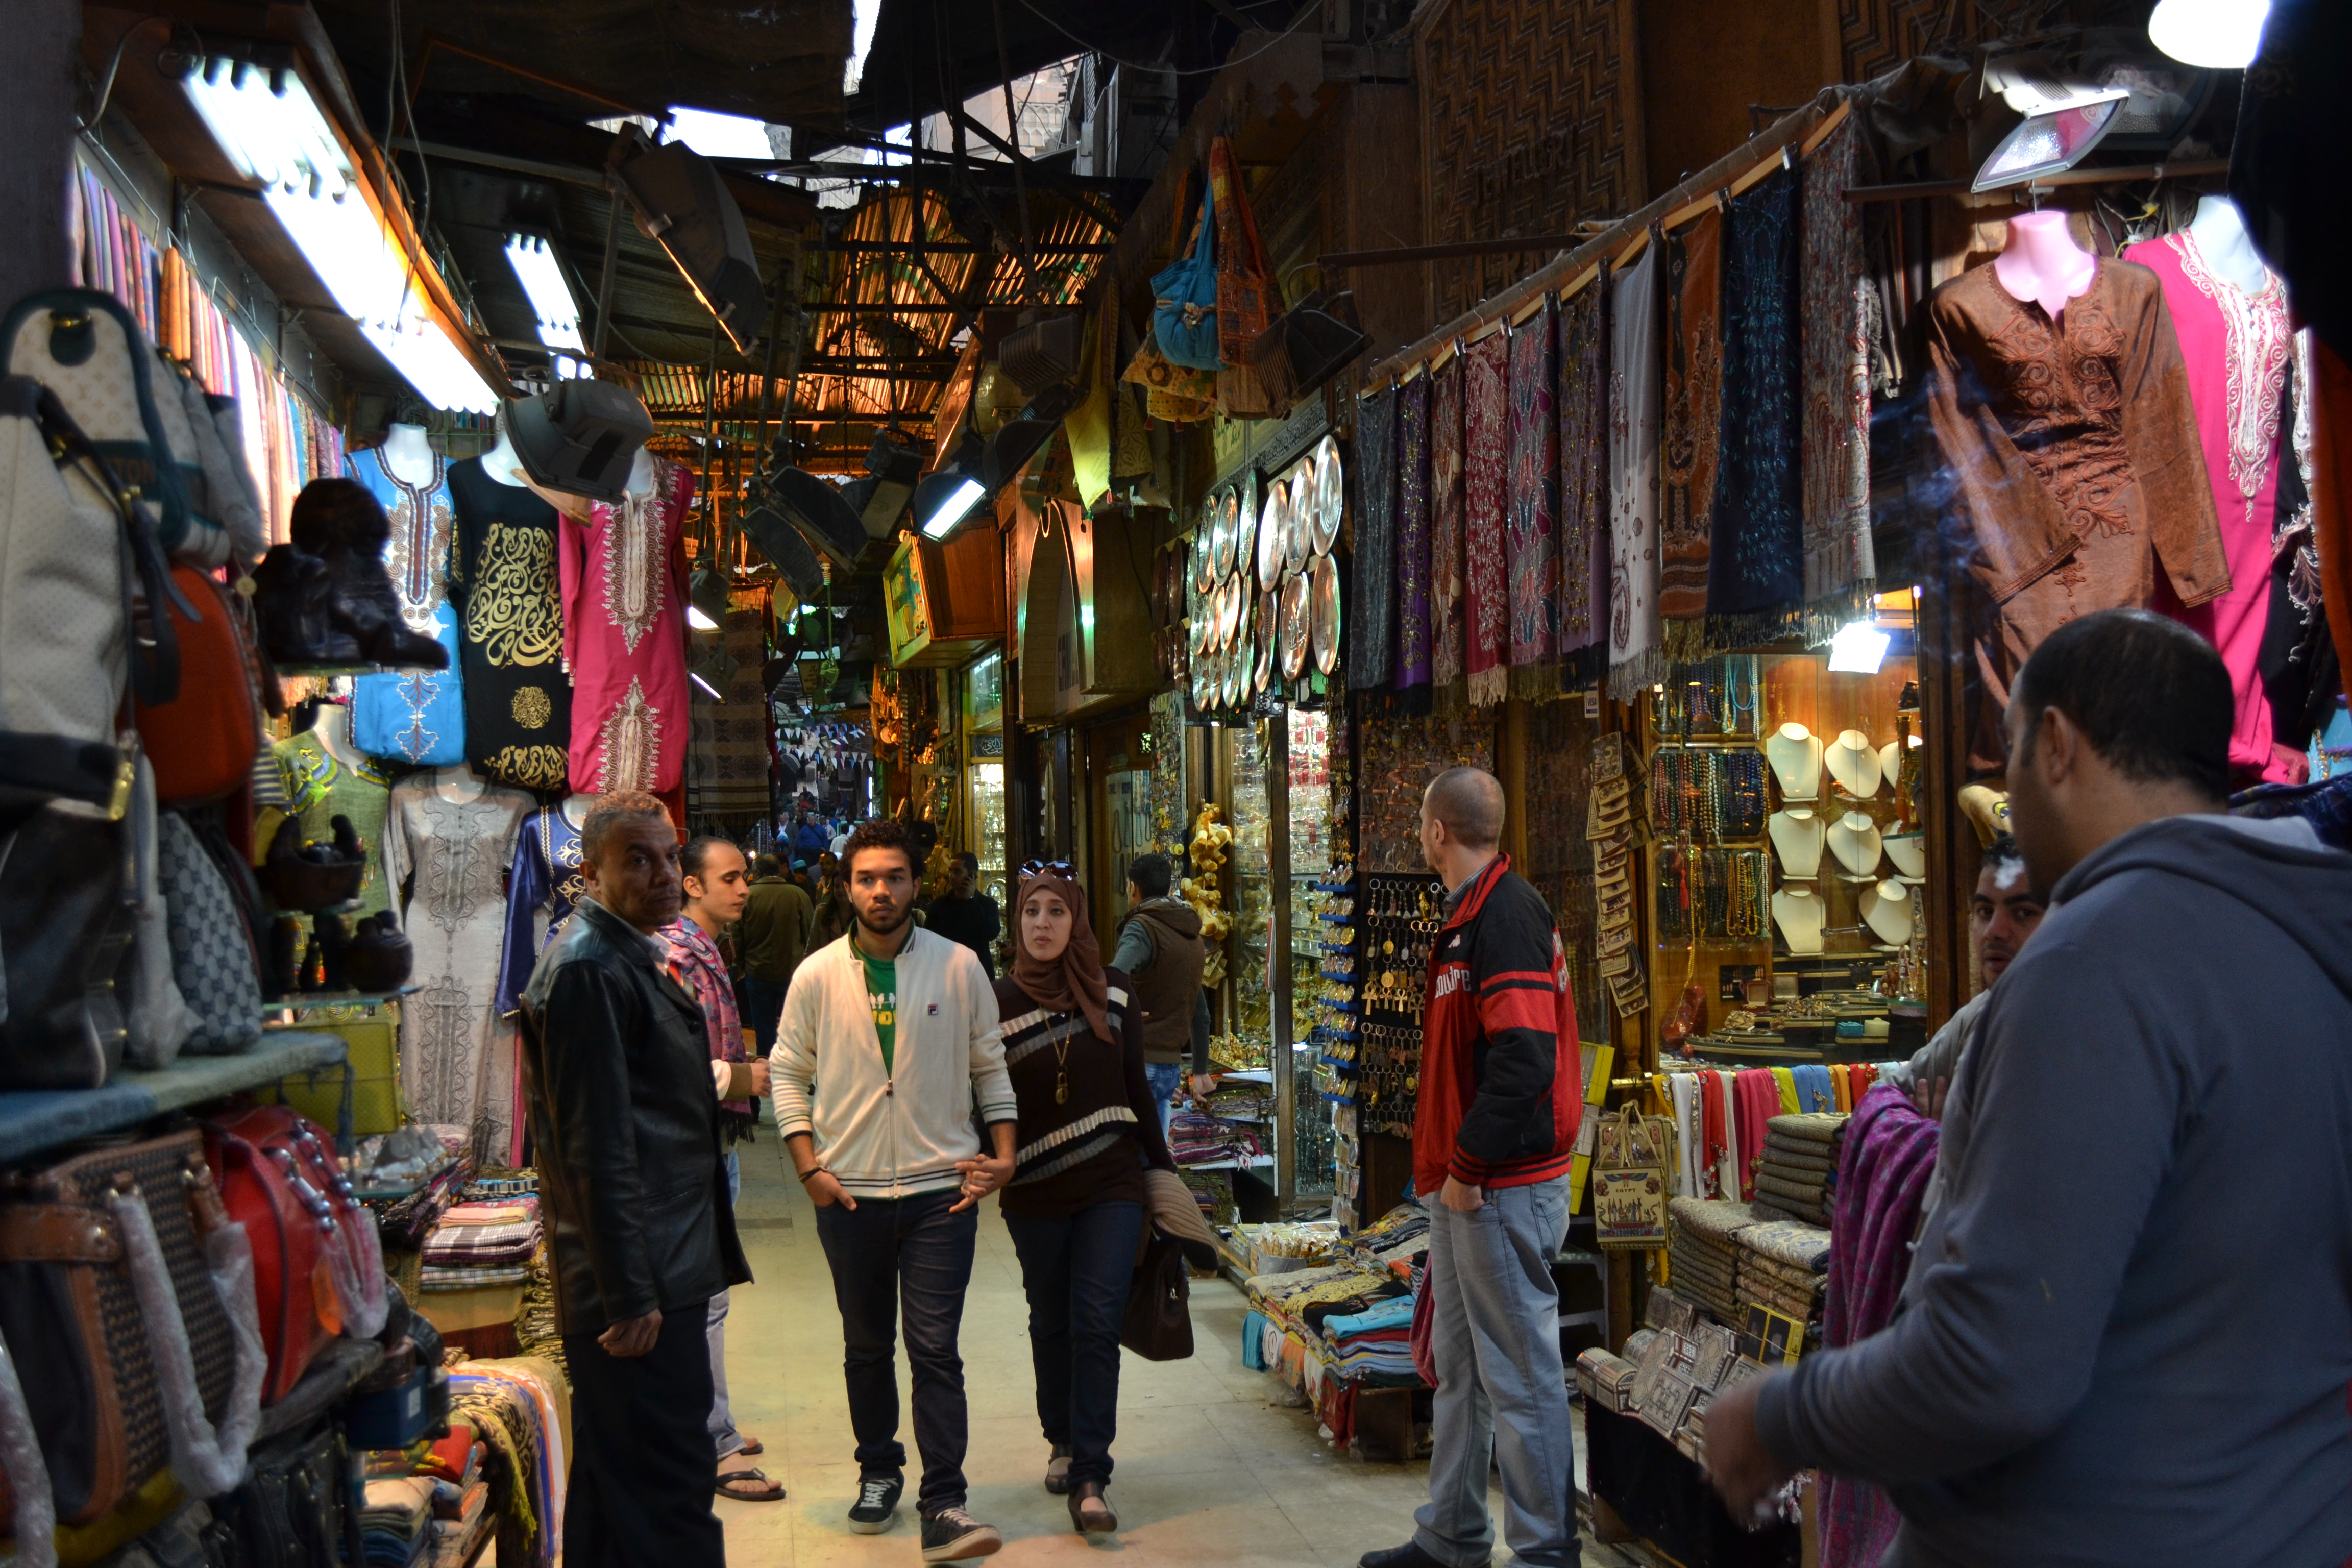 In the past, a picture like this would include tens of foreigners. Today it is simply two Egyptians walking past hawk-eyed shopkeepers.